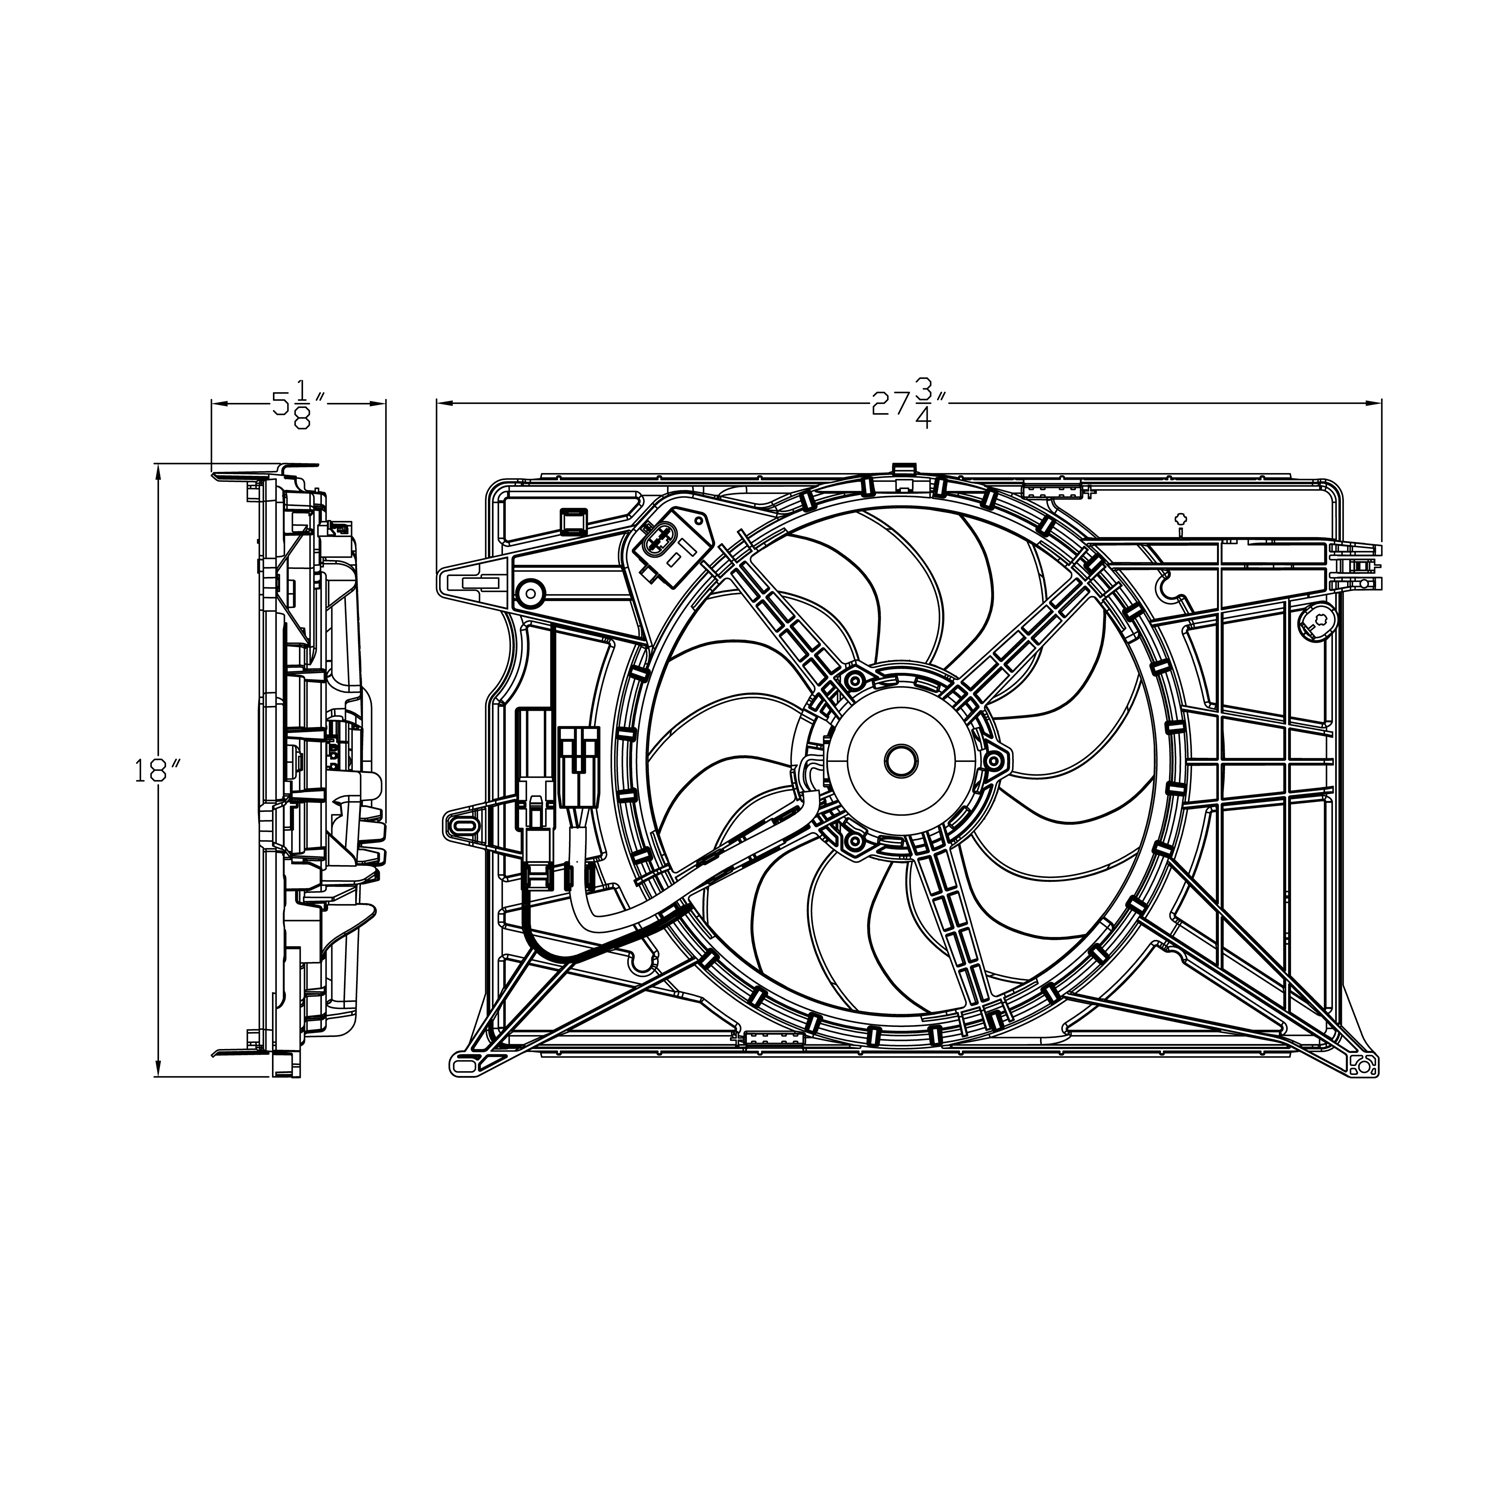 Amazon.com: CPP Radiator Cooling Fan embly for Fiat 500X, Jeep ... on block diagram, motor components diagram, electric motor diagram, ge 469 multilin menu diagram, motor oil diagram, motor output curve, motor connections diagram, motor engine diagram, craftsman table saw diagram, idec relays diagram, motor controller diagram, 12 lead motor diagram, electrical motor diagram, motor control diagram, motor parts diagram, 9 wire motor diagram, circuit diagram, motor guide, motor data sheet, motor overload relay diagram,